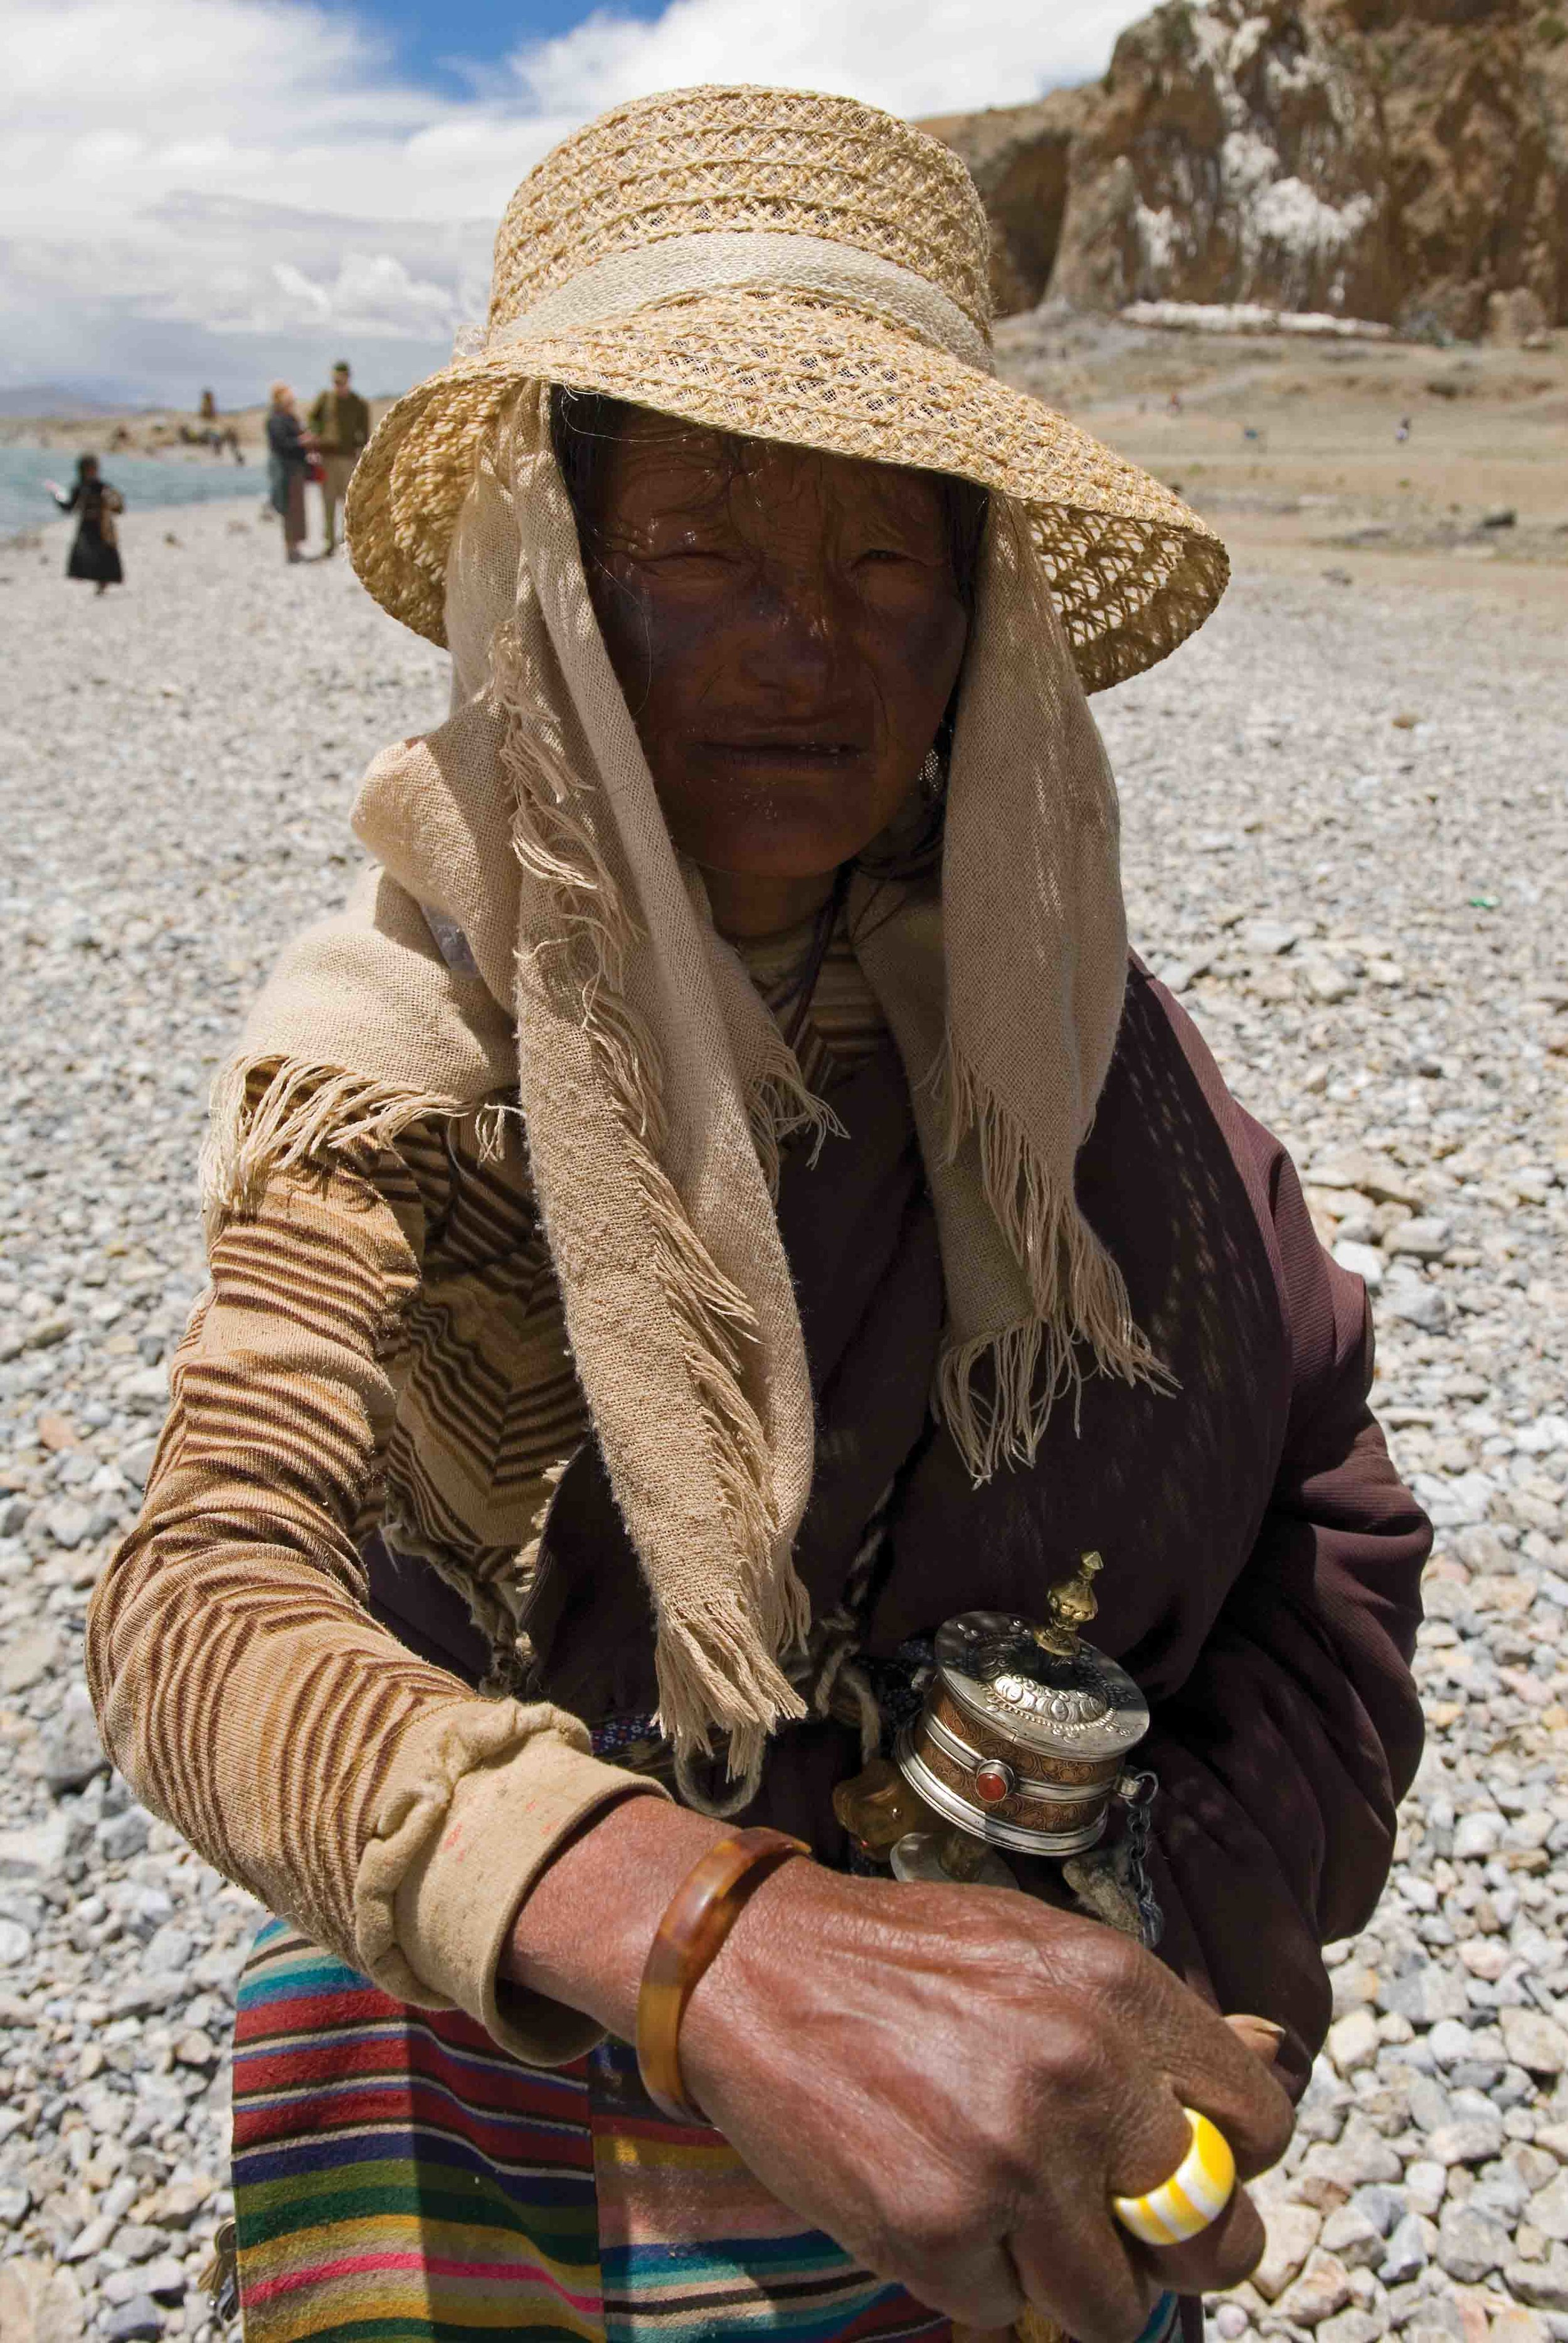 On the shores of Lake Nam Tso on the Tibetan Plateau, at the highest altitude saltwater lake in the world and closer to Mount Everest than to the nearest ocean, a Tibetan woman proudly displays her bekko bracelet. © Roderic B. Mast